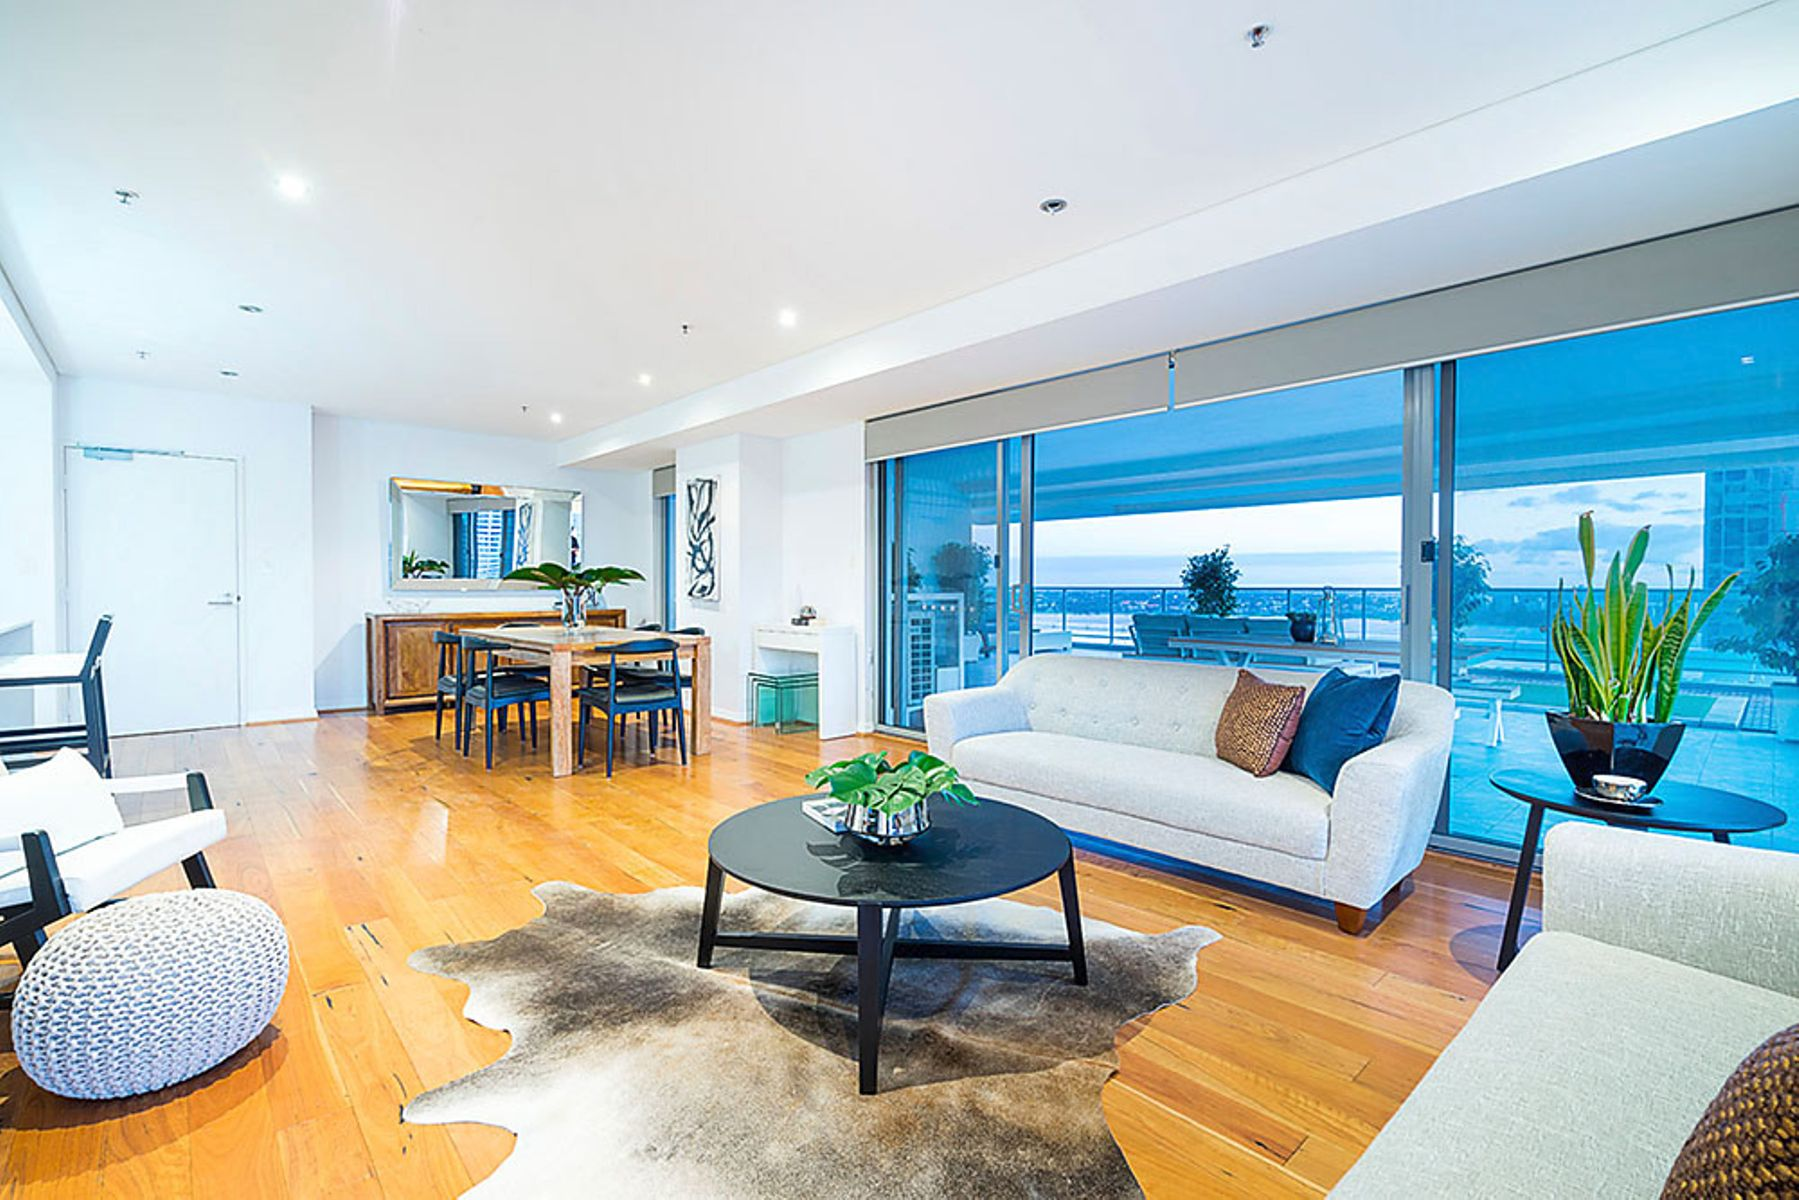 Houses for Sale Perth   103/580 Hay Street, Perth, WA 6000